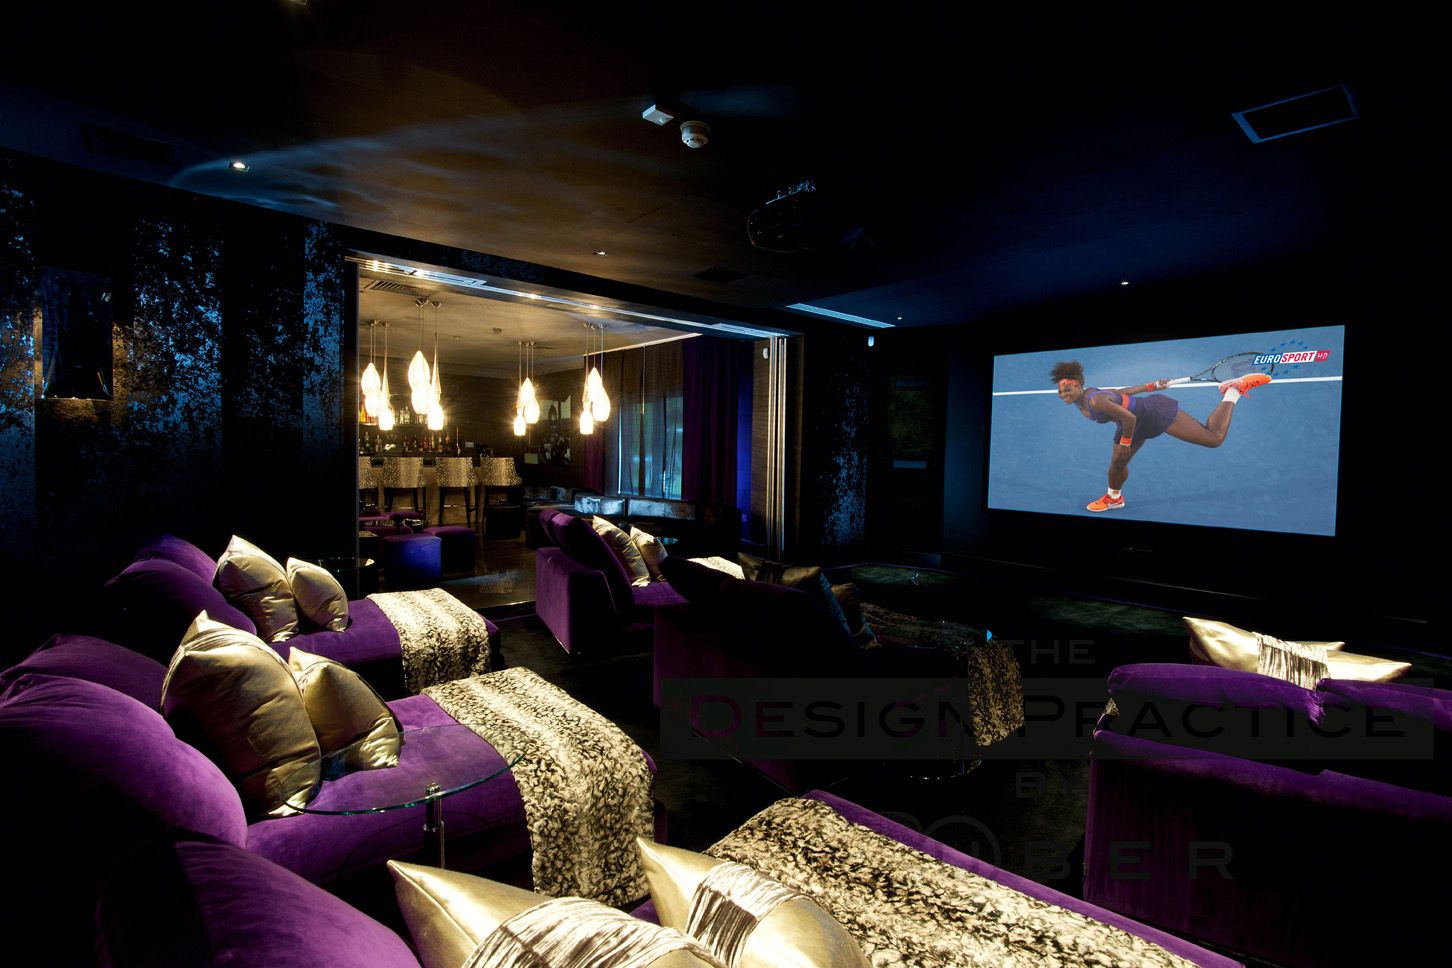 Home Theater Design Company Private Cinema Room  Through To Barthe Design Companyuber .